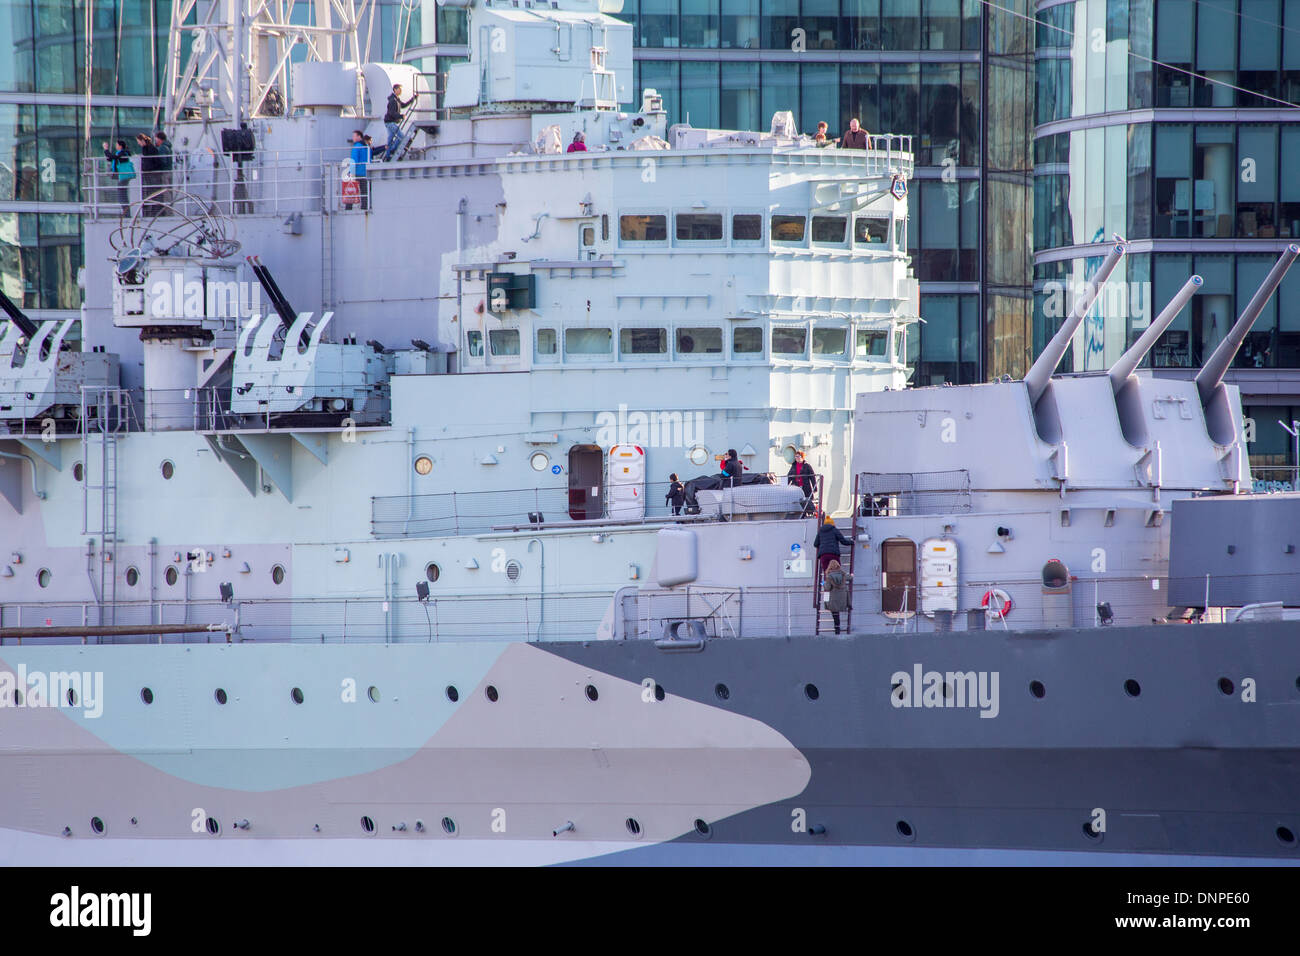 HMS Belfast tourist attraction museum ship moored in London - Stock Image